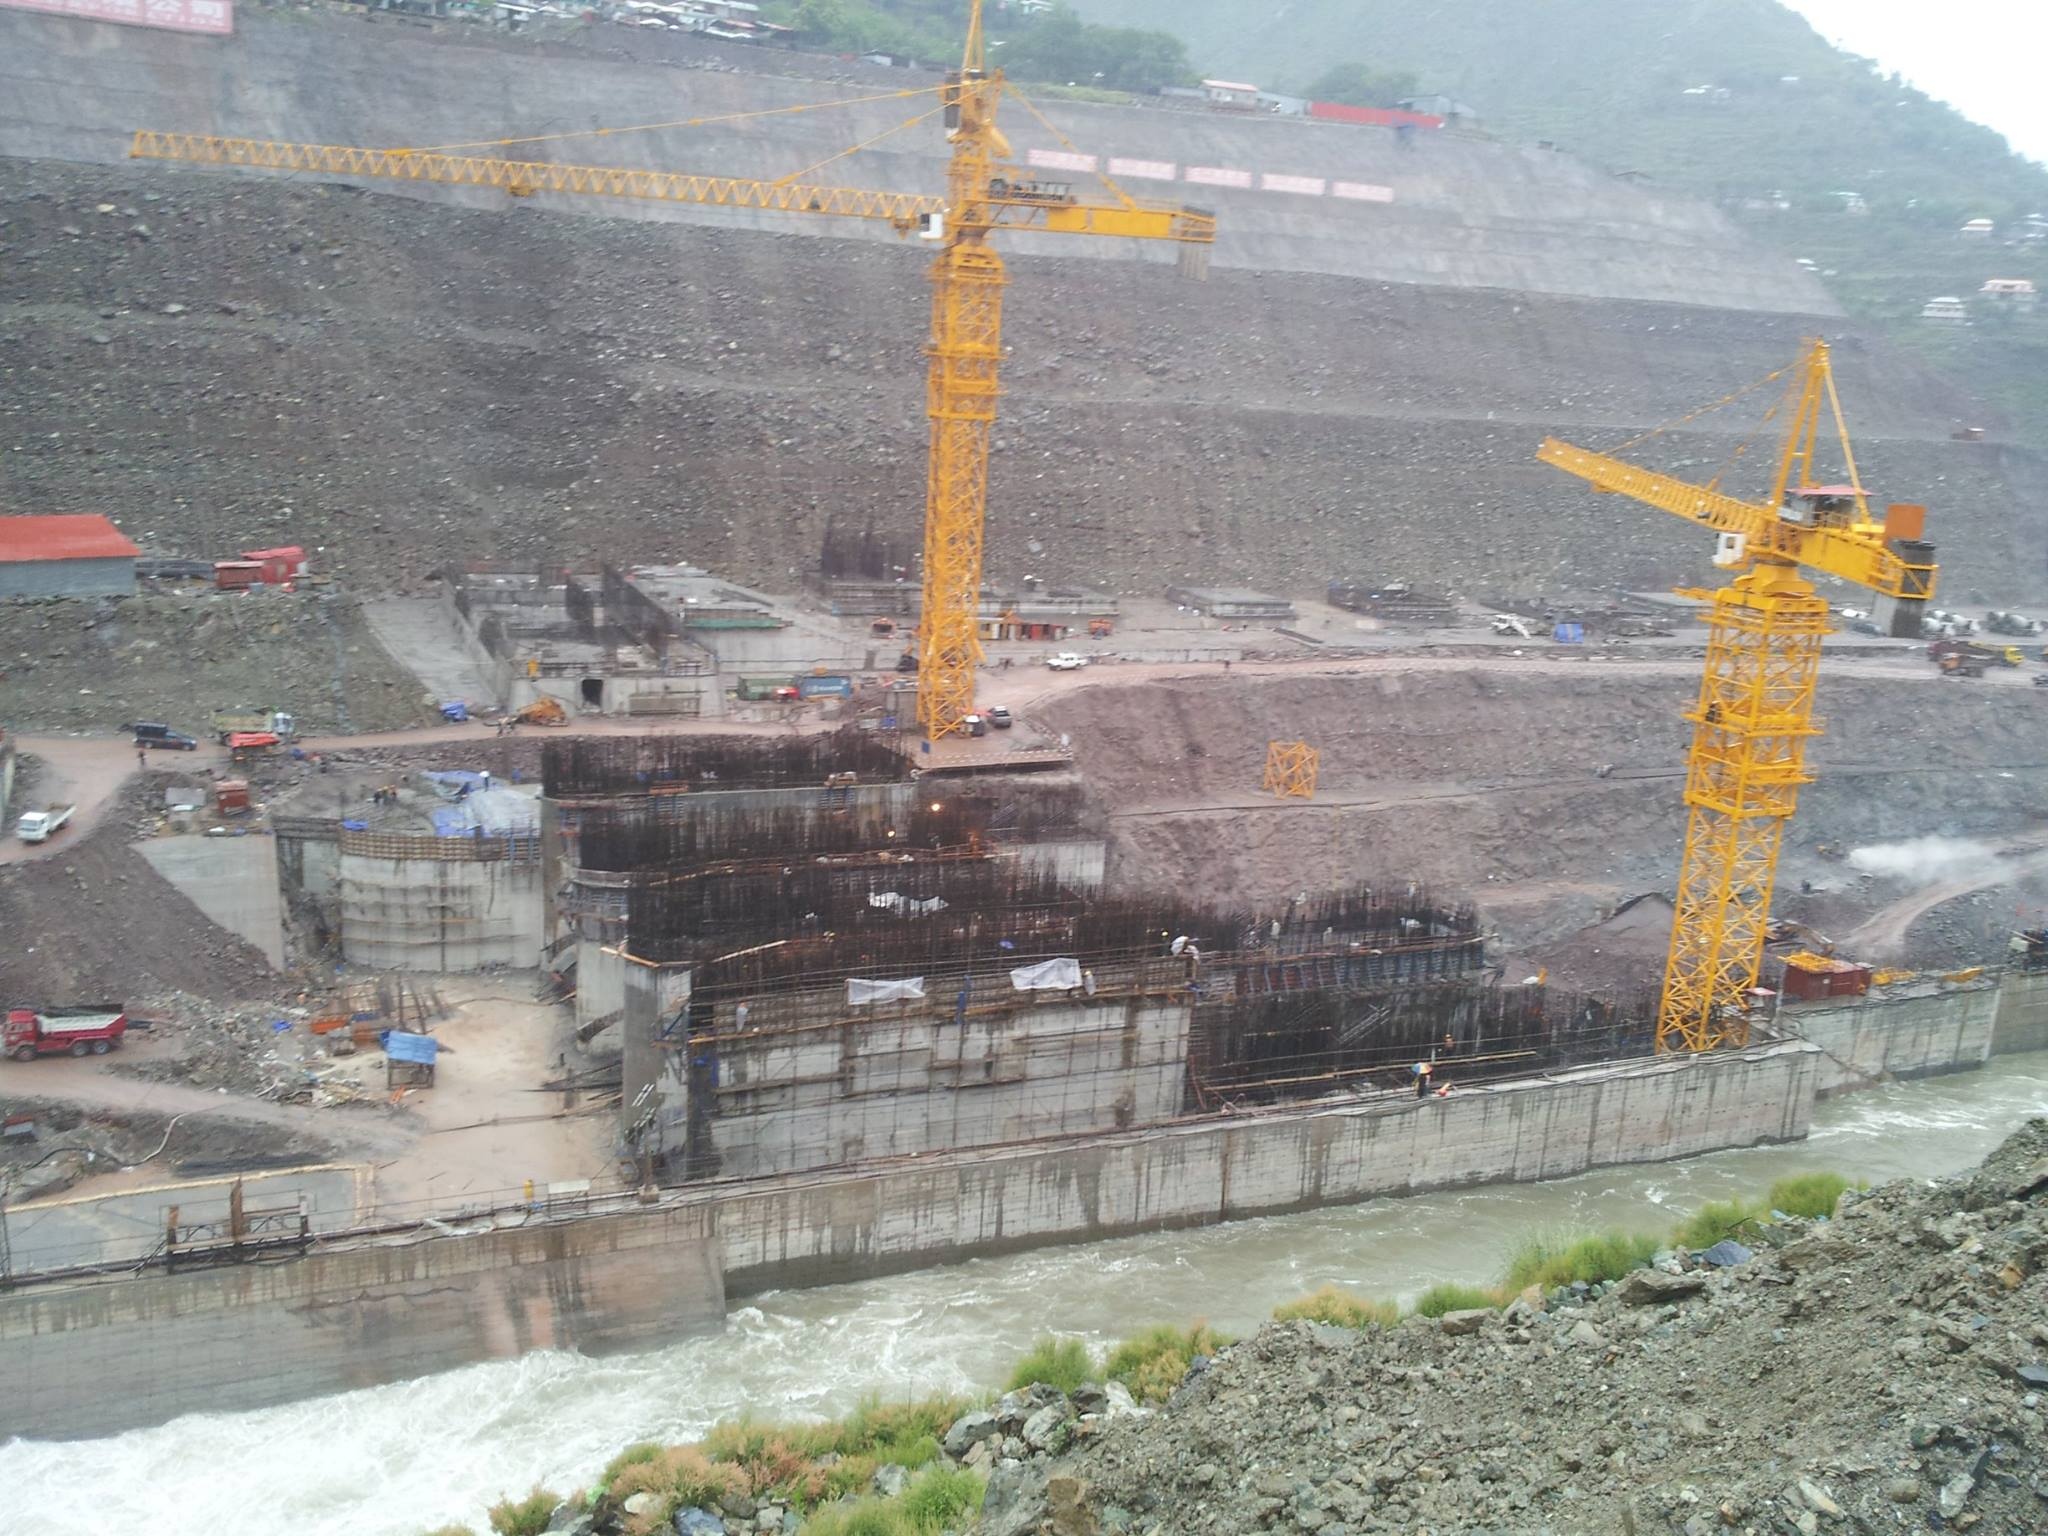 thesis on hydro power plant Approval of the thesis: development of the rule curve for altiparmak hydroelectric power plant submitted by şeri̇fe ece boyacioğlu in partial fulfillment of the requirements for.